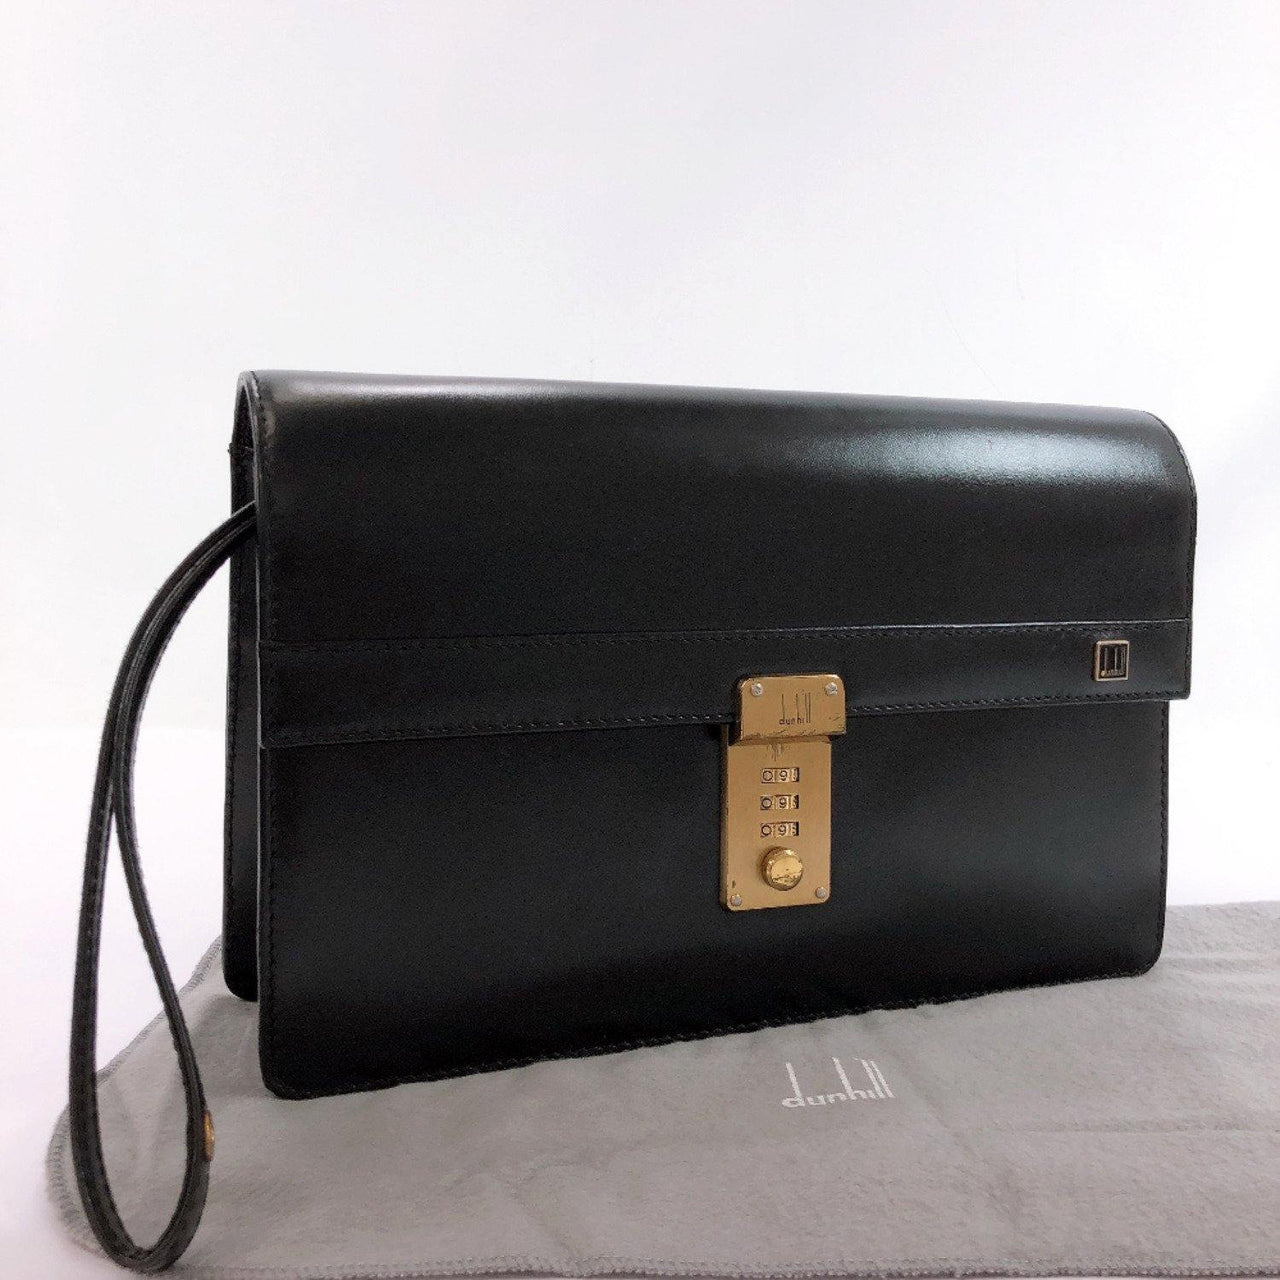 Dunhill business bag Number lock leather black mens Used - JP-BRANDS.com